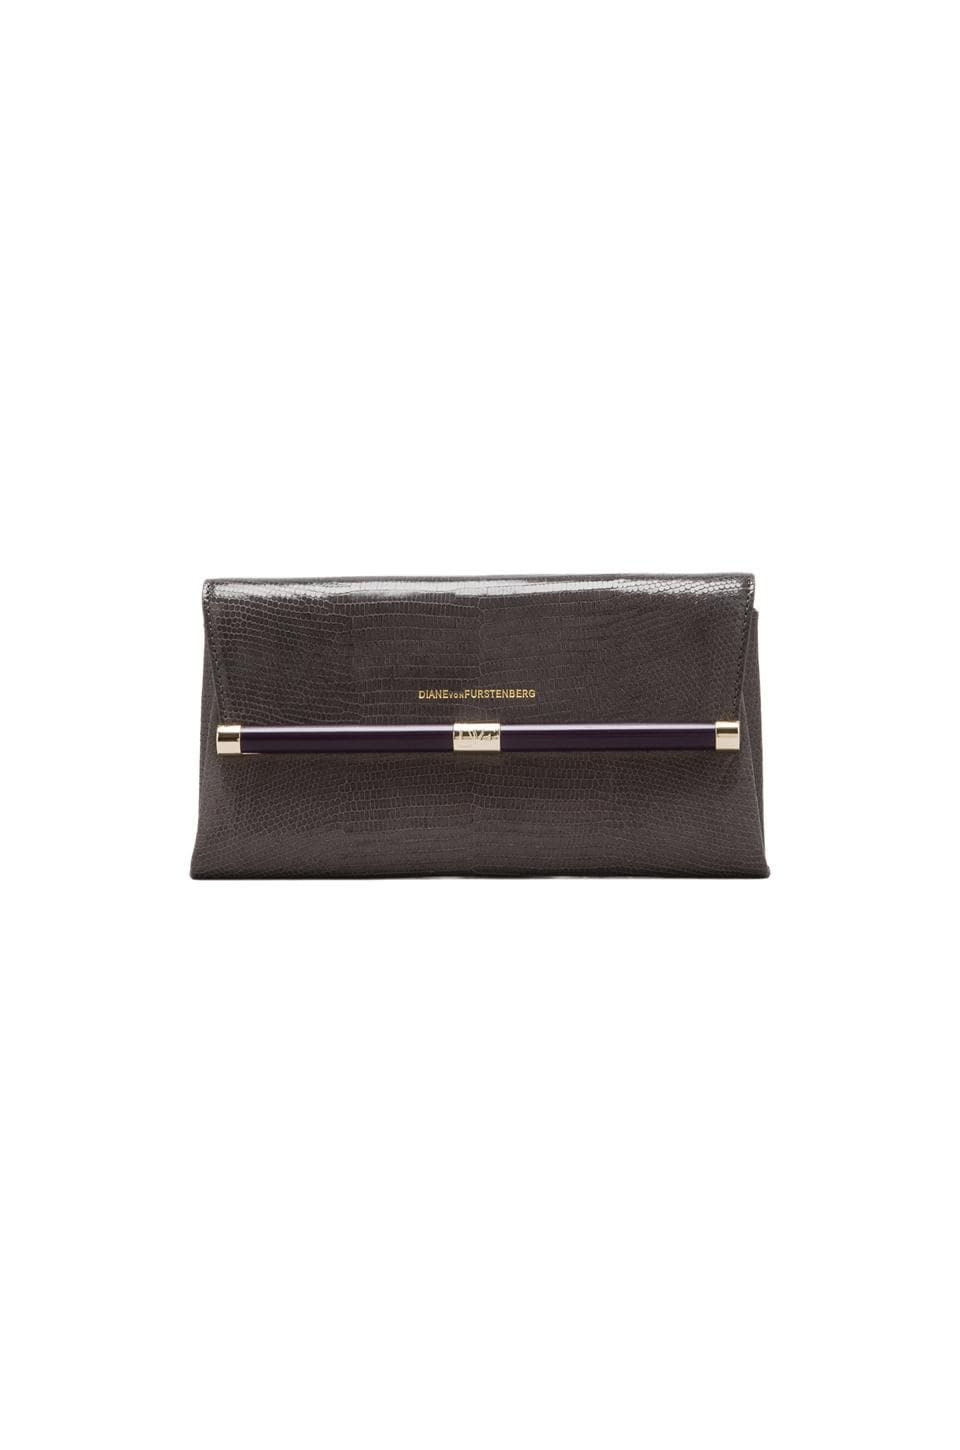 Diane von Furstenberg Envelope Clutch in Storm